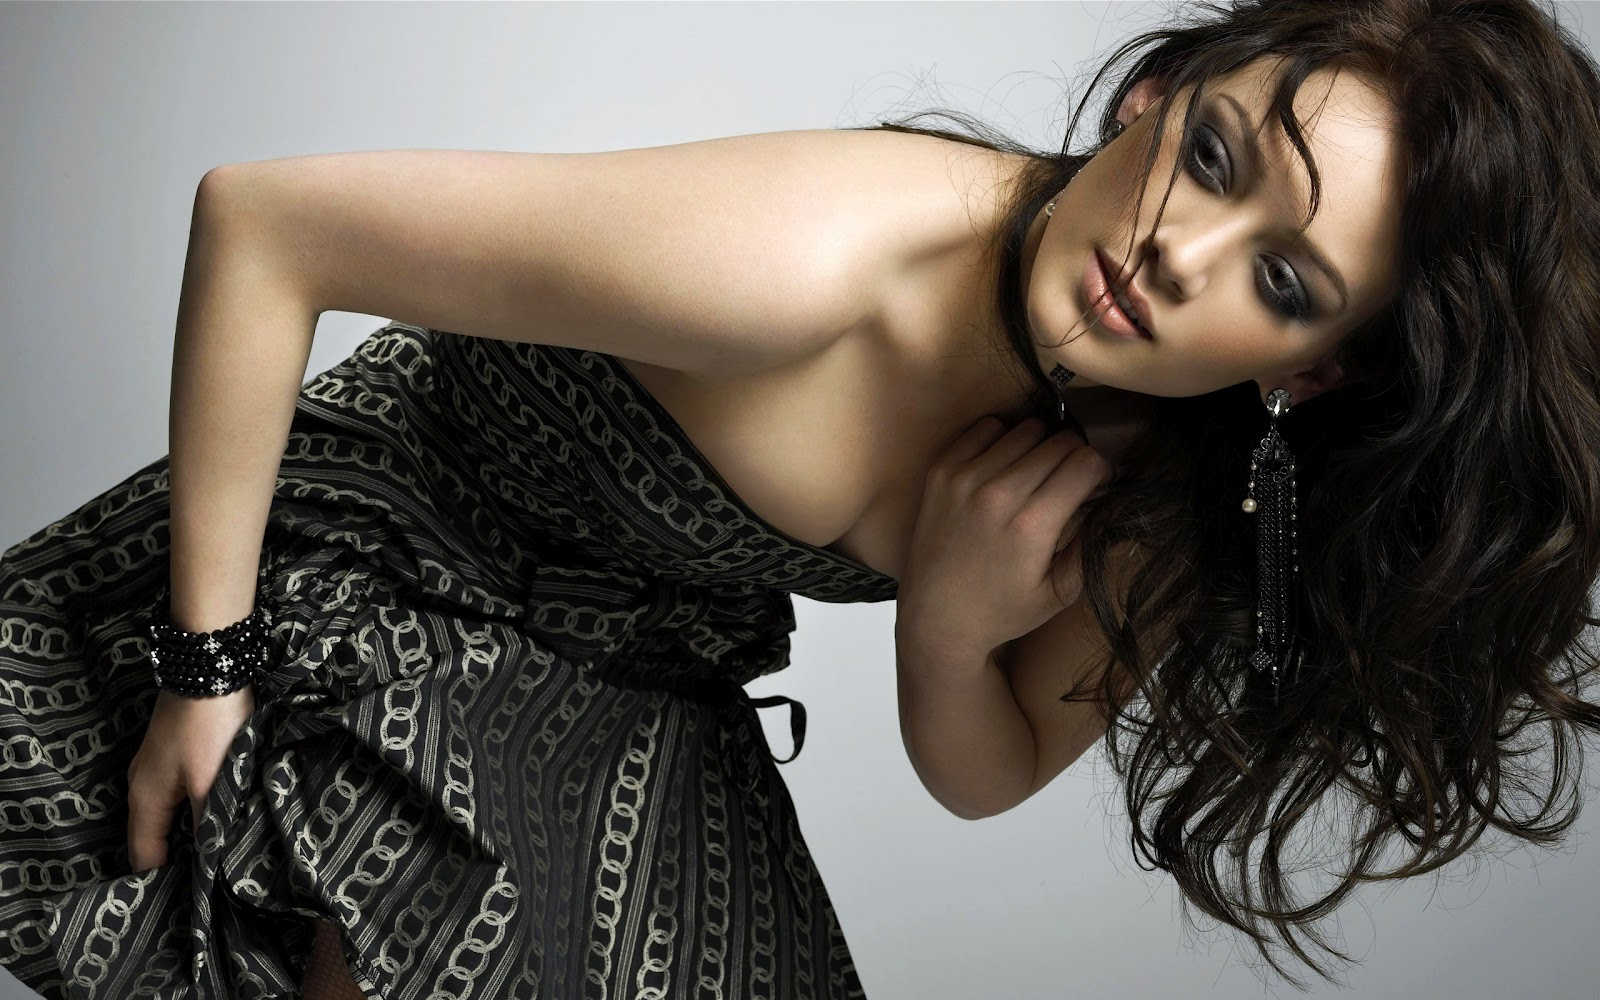 Hilary Duff new Hot HD Wallpapers 2012 | Hollywood Stars